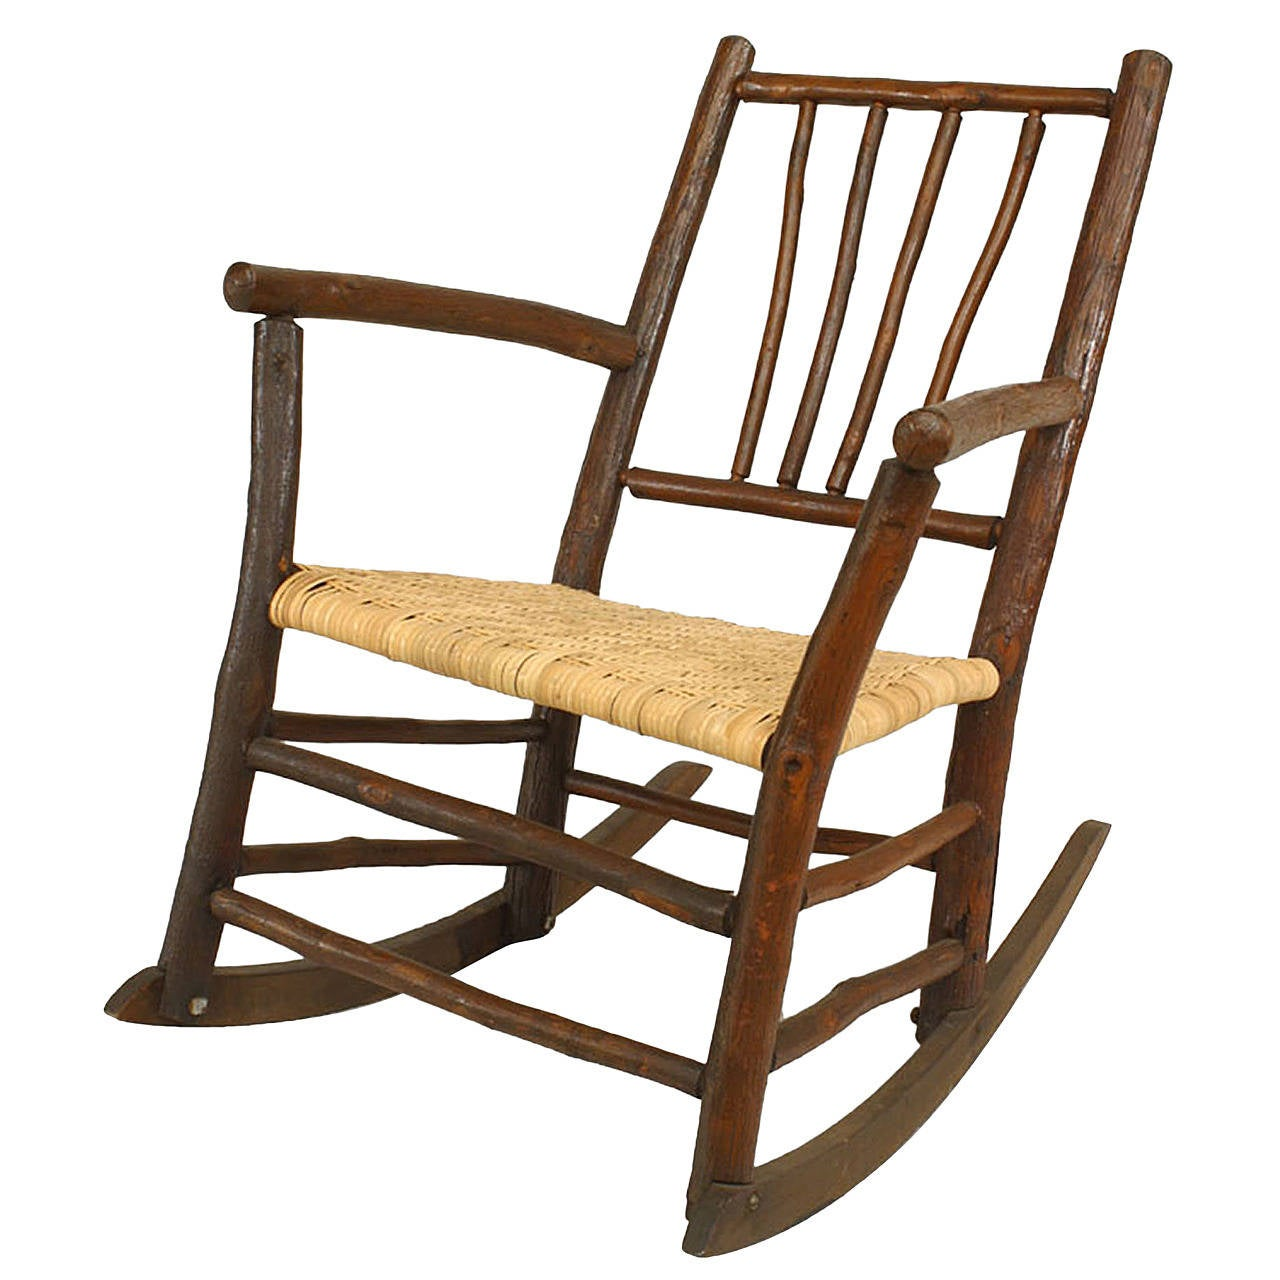 hickory chairs for sale large baseball bean bag chair early 20th century american rustic old rocking